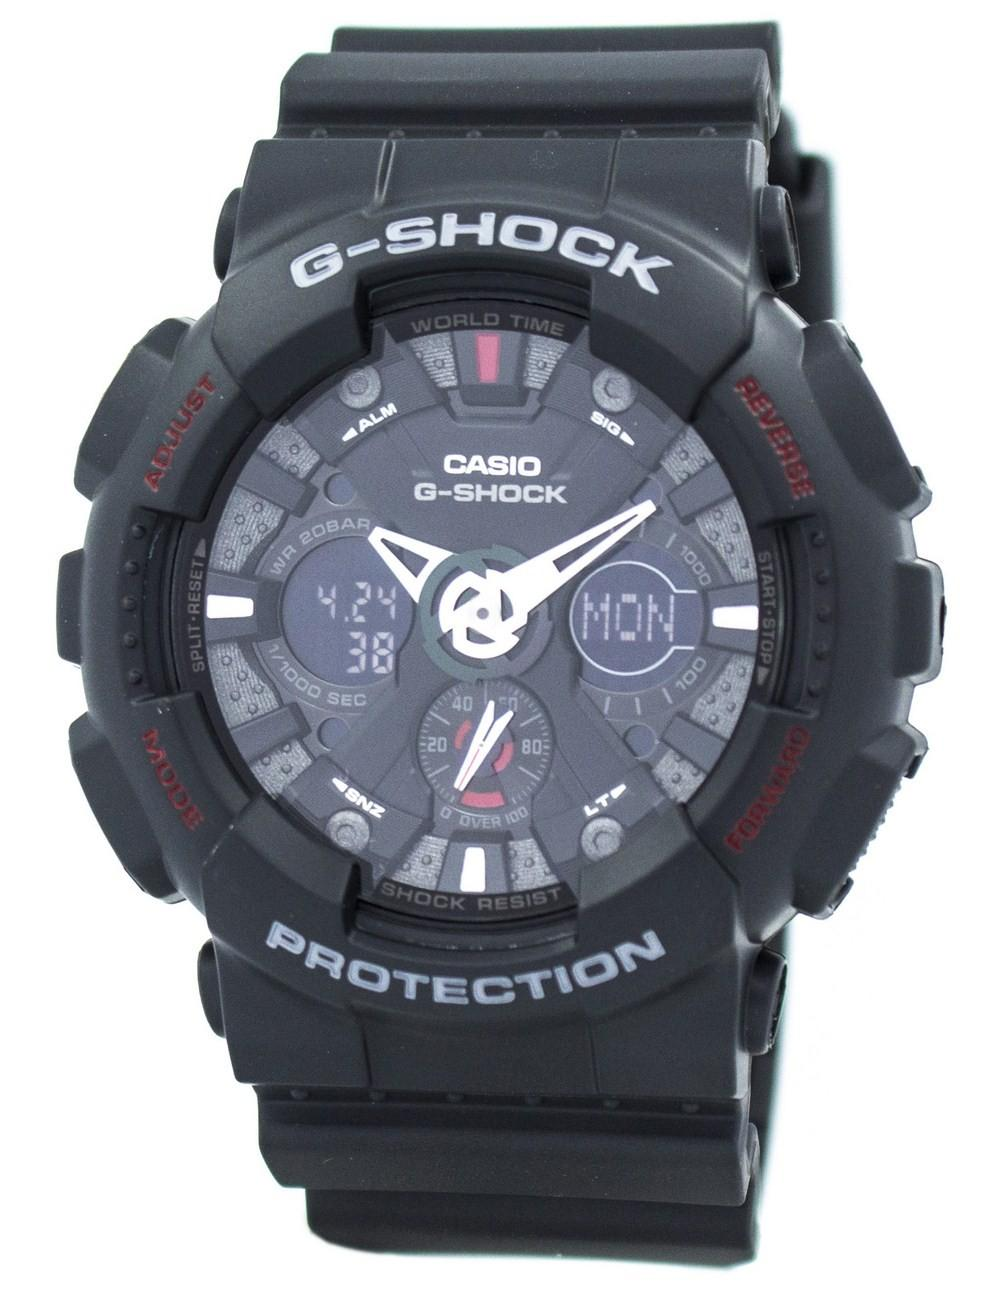 Casio G-Shock GA-120-1A GA120-1A Black Analog Digital Men's Watch